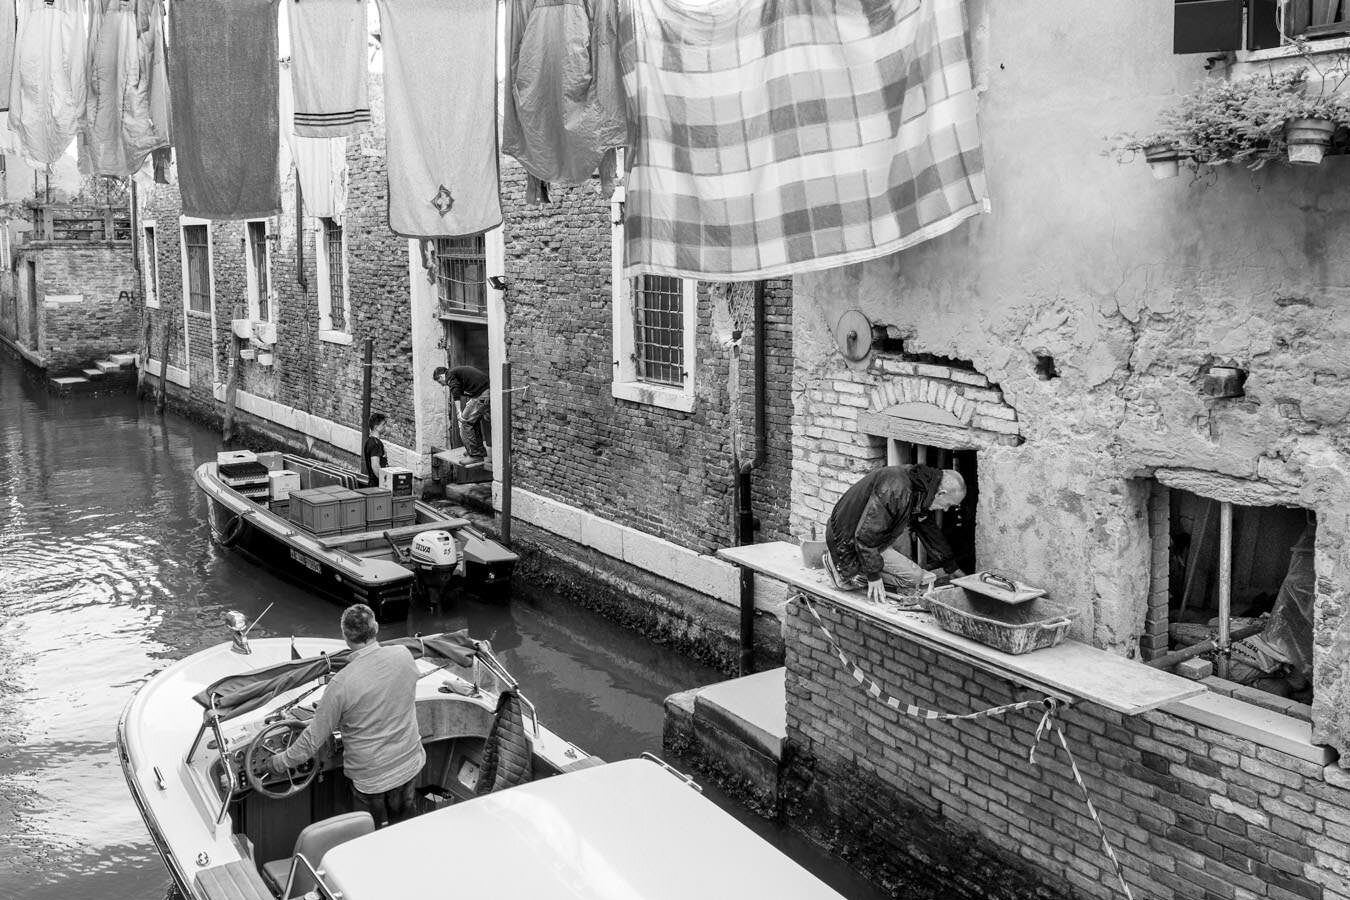 A typical Venetian scene in a narrow canal of Venice